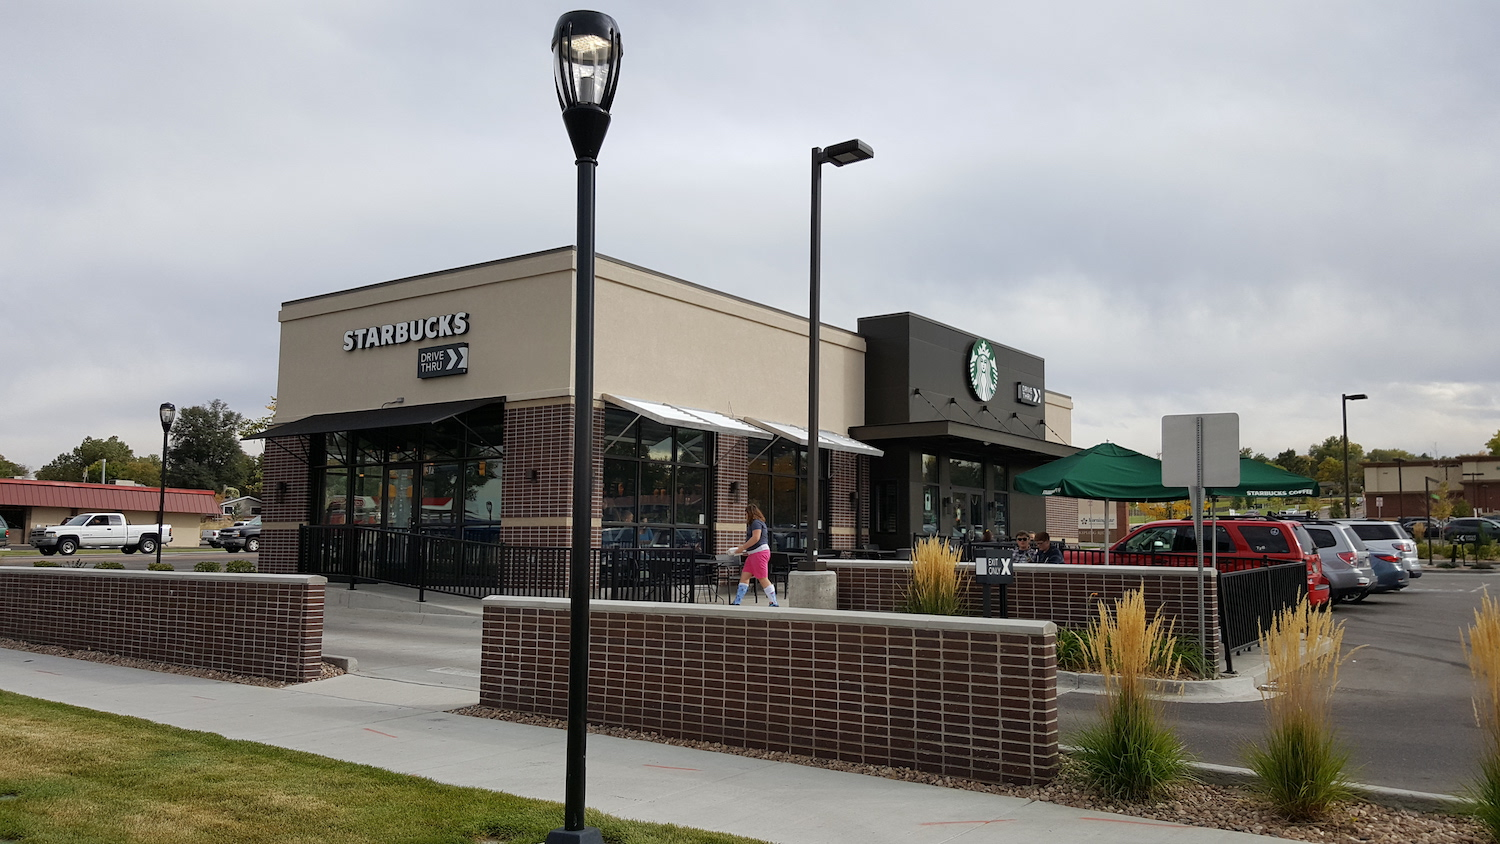 Starbucks (Kipling Street) - Wheat Ridge, CO*